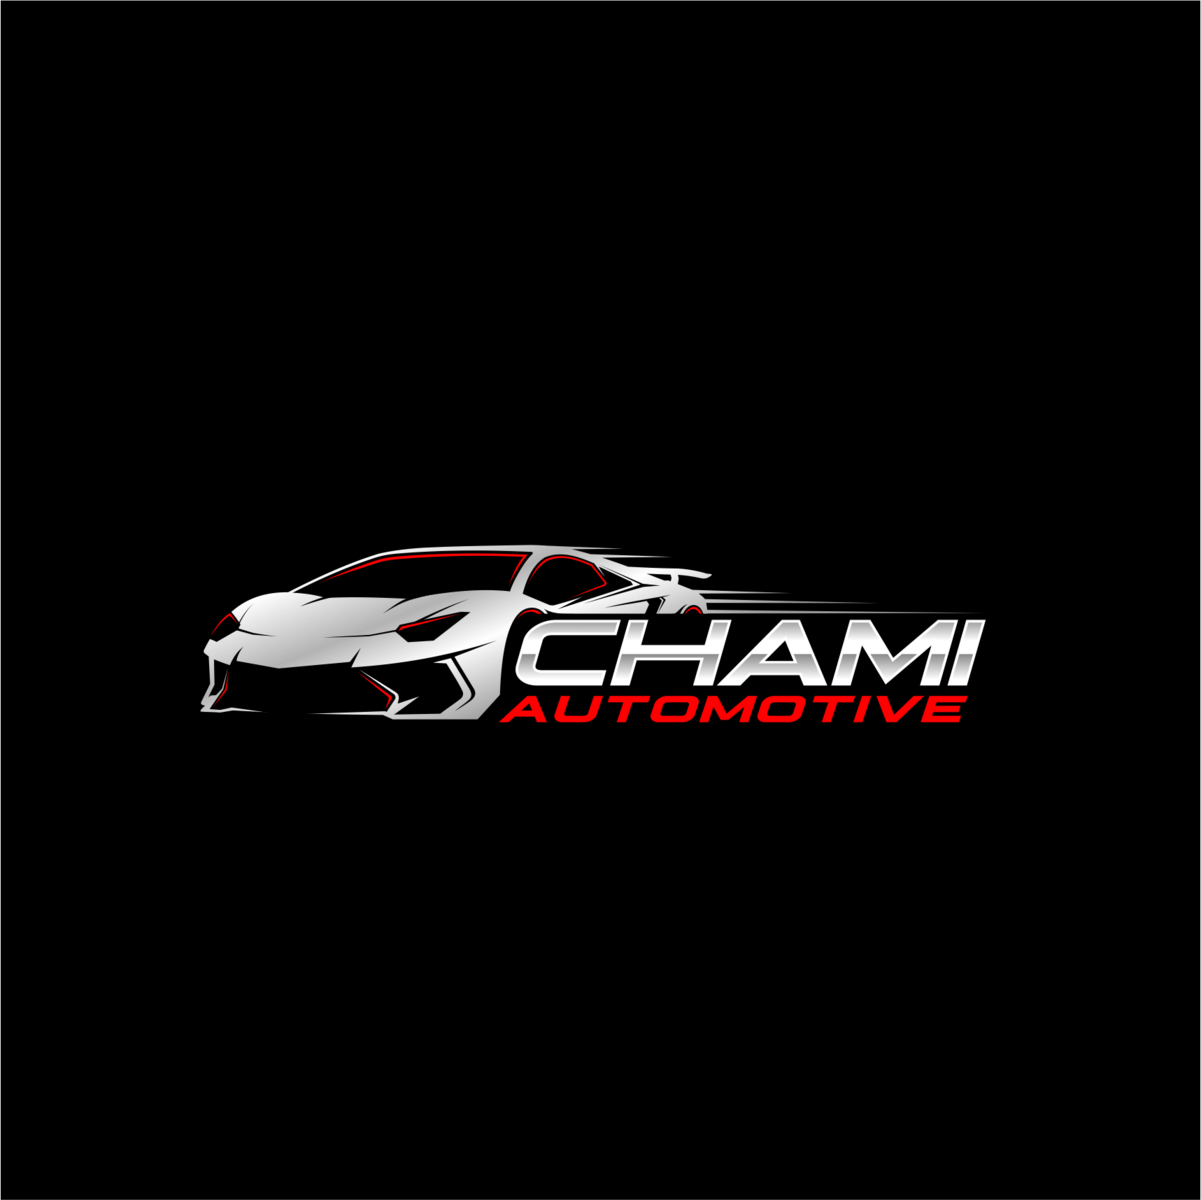 Chami Automotive Sugar Land Tx Read Consumer Reviews Browse Used And New Cars For Sale